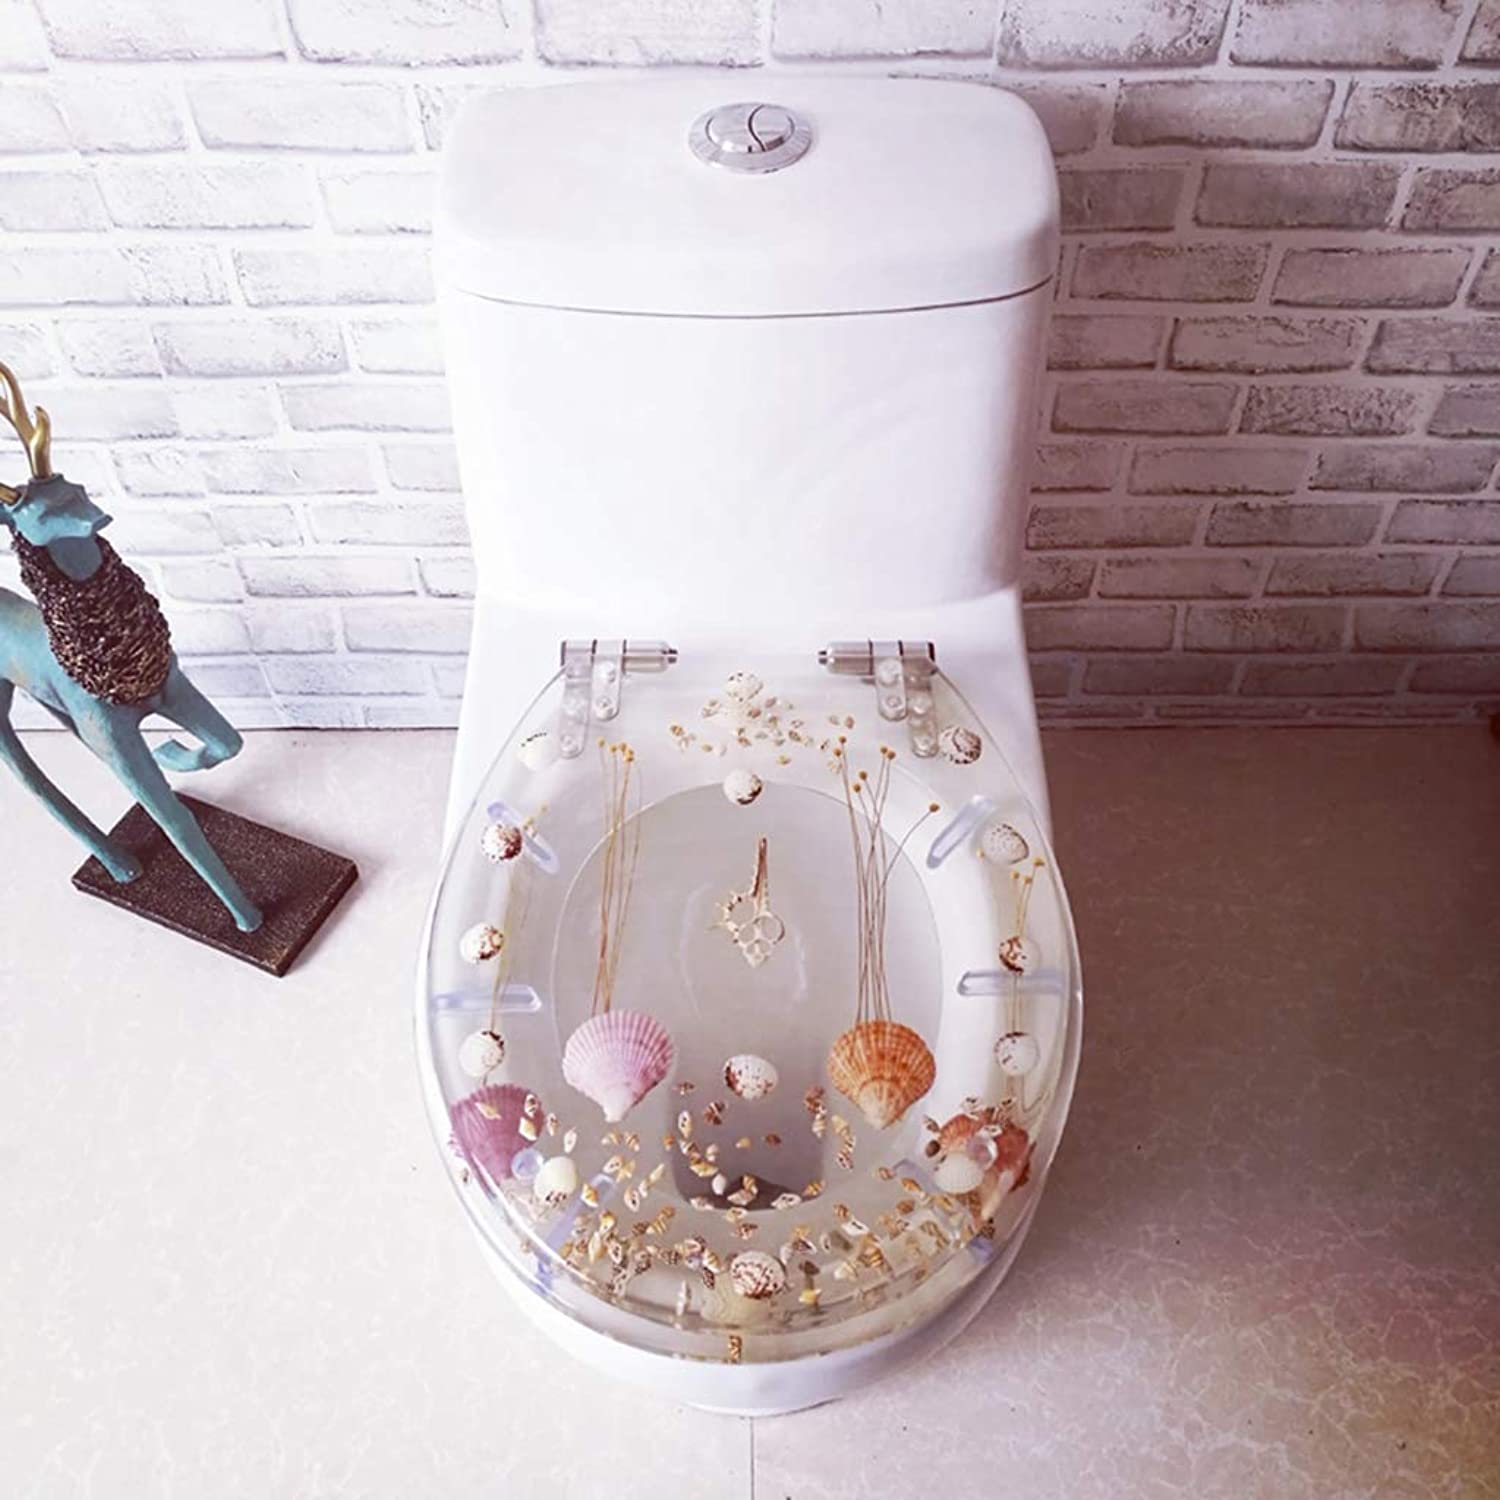 WC-Sitz Toilet seat, resin toilet cover Ordinary toilet cover transparent dry flower stainless steel slow-release quick release hinge OUV universal